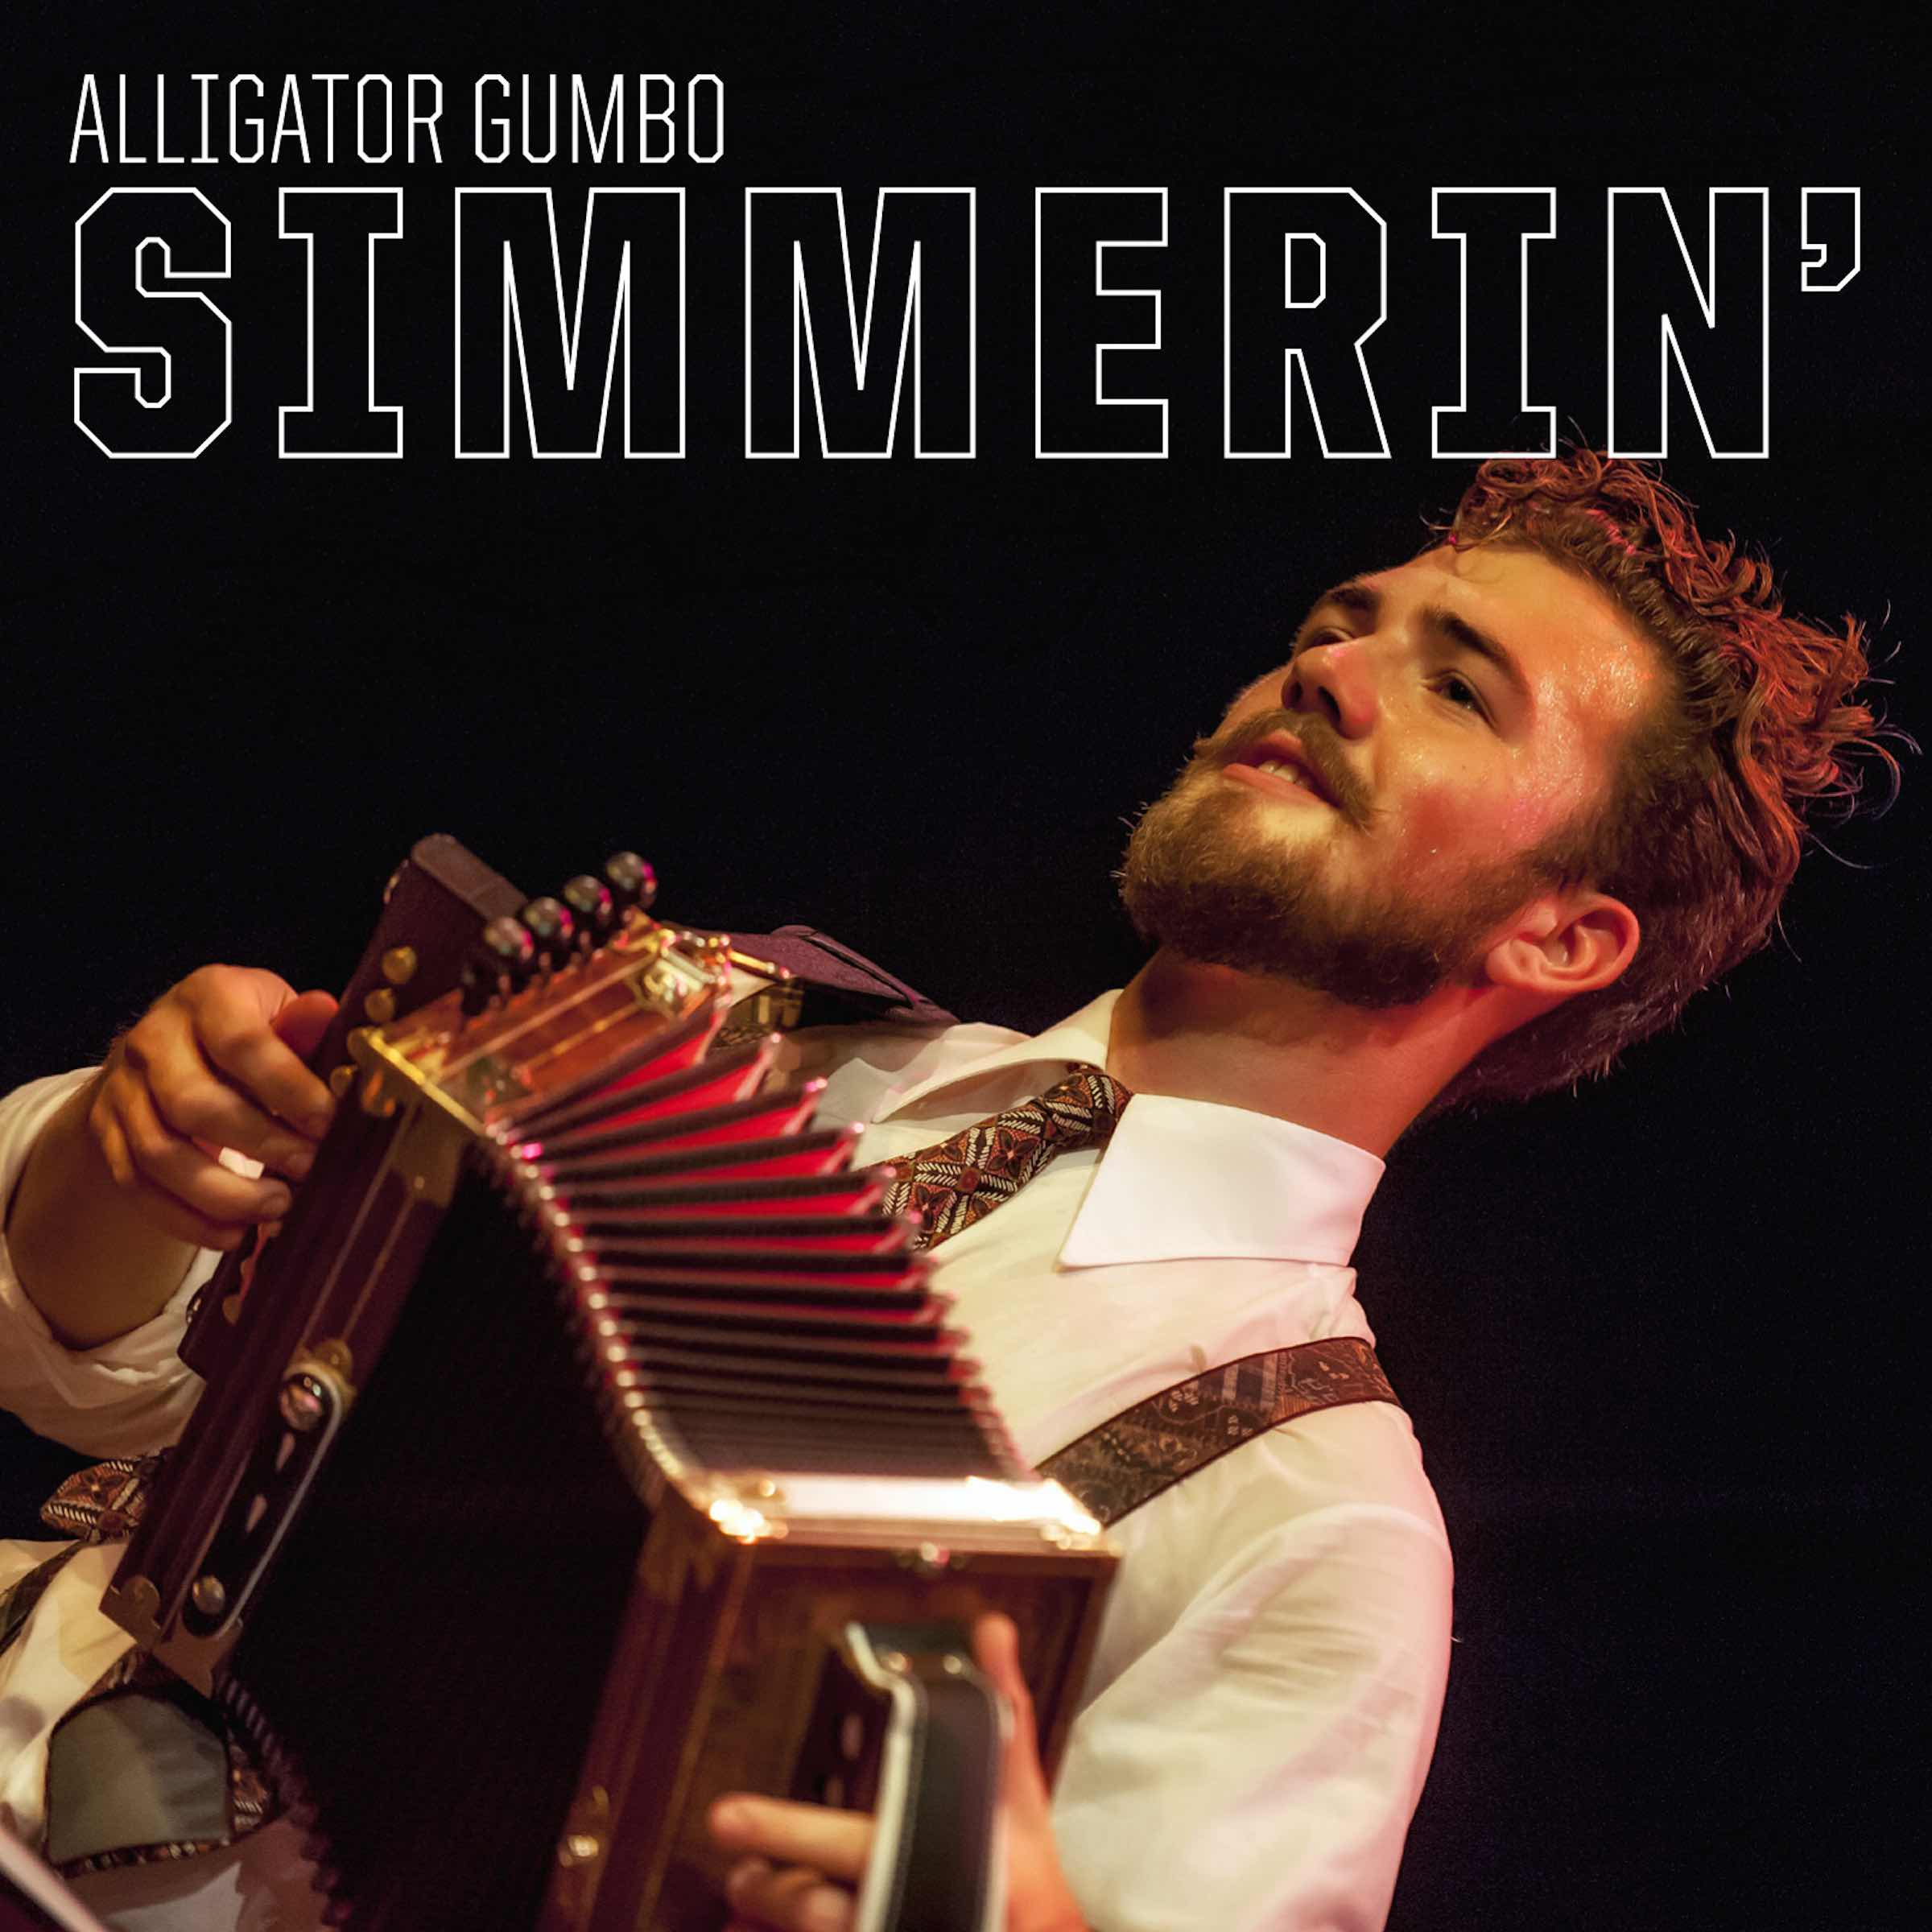 Alligator Gumbo – Simmerin'. No longer available from us. Since Nov. 2014 distributed by Rootsy.nu Alligator Gumbo - Simmerin' monophon MPHCD003, 2014.